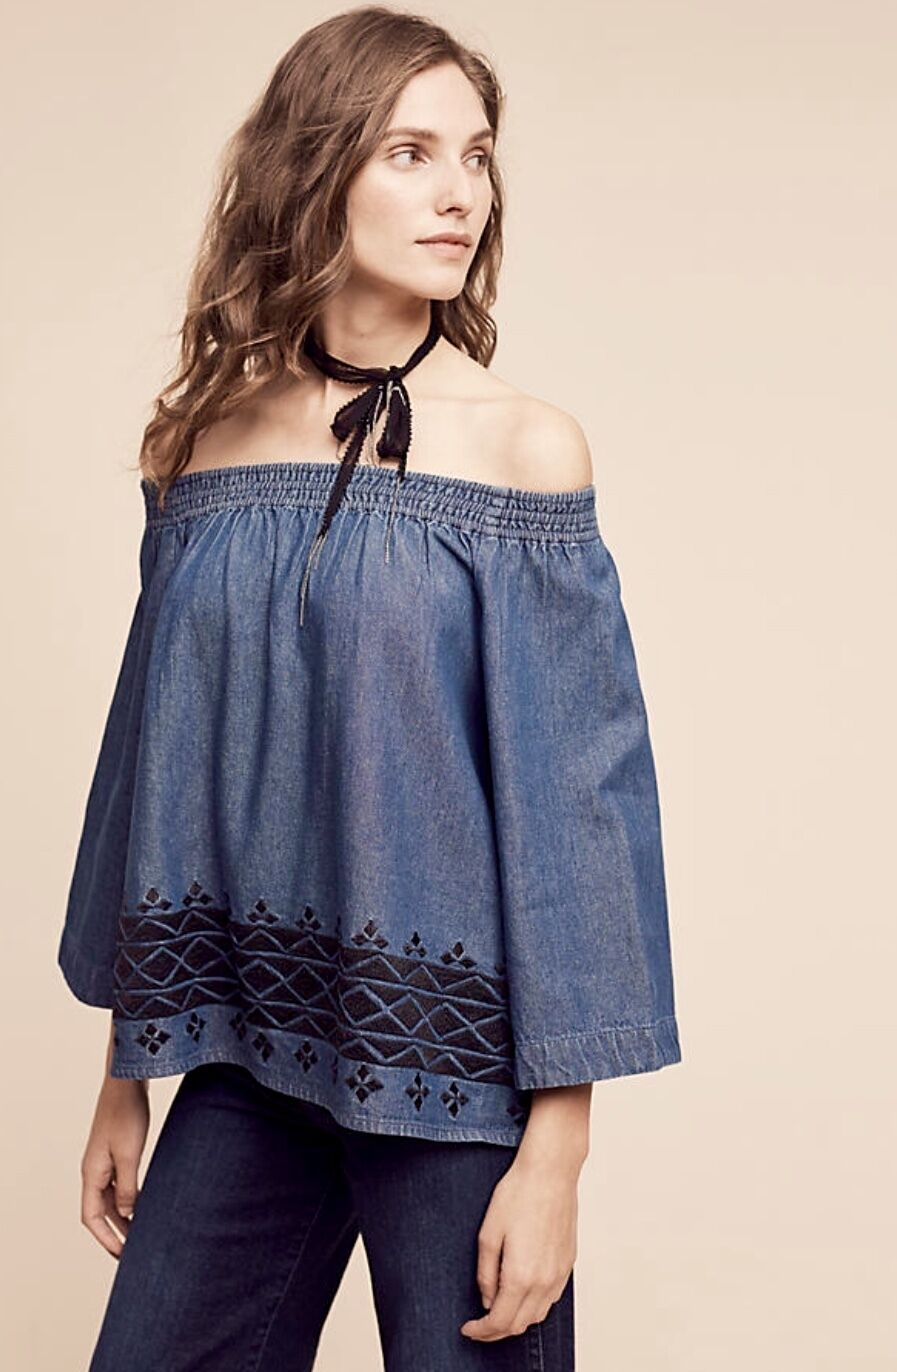 NWT Anthropologie Denim Off The Shoulder schwarz Embroiderot Swing Top M